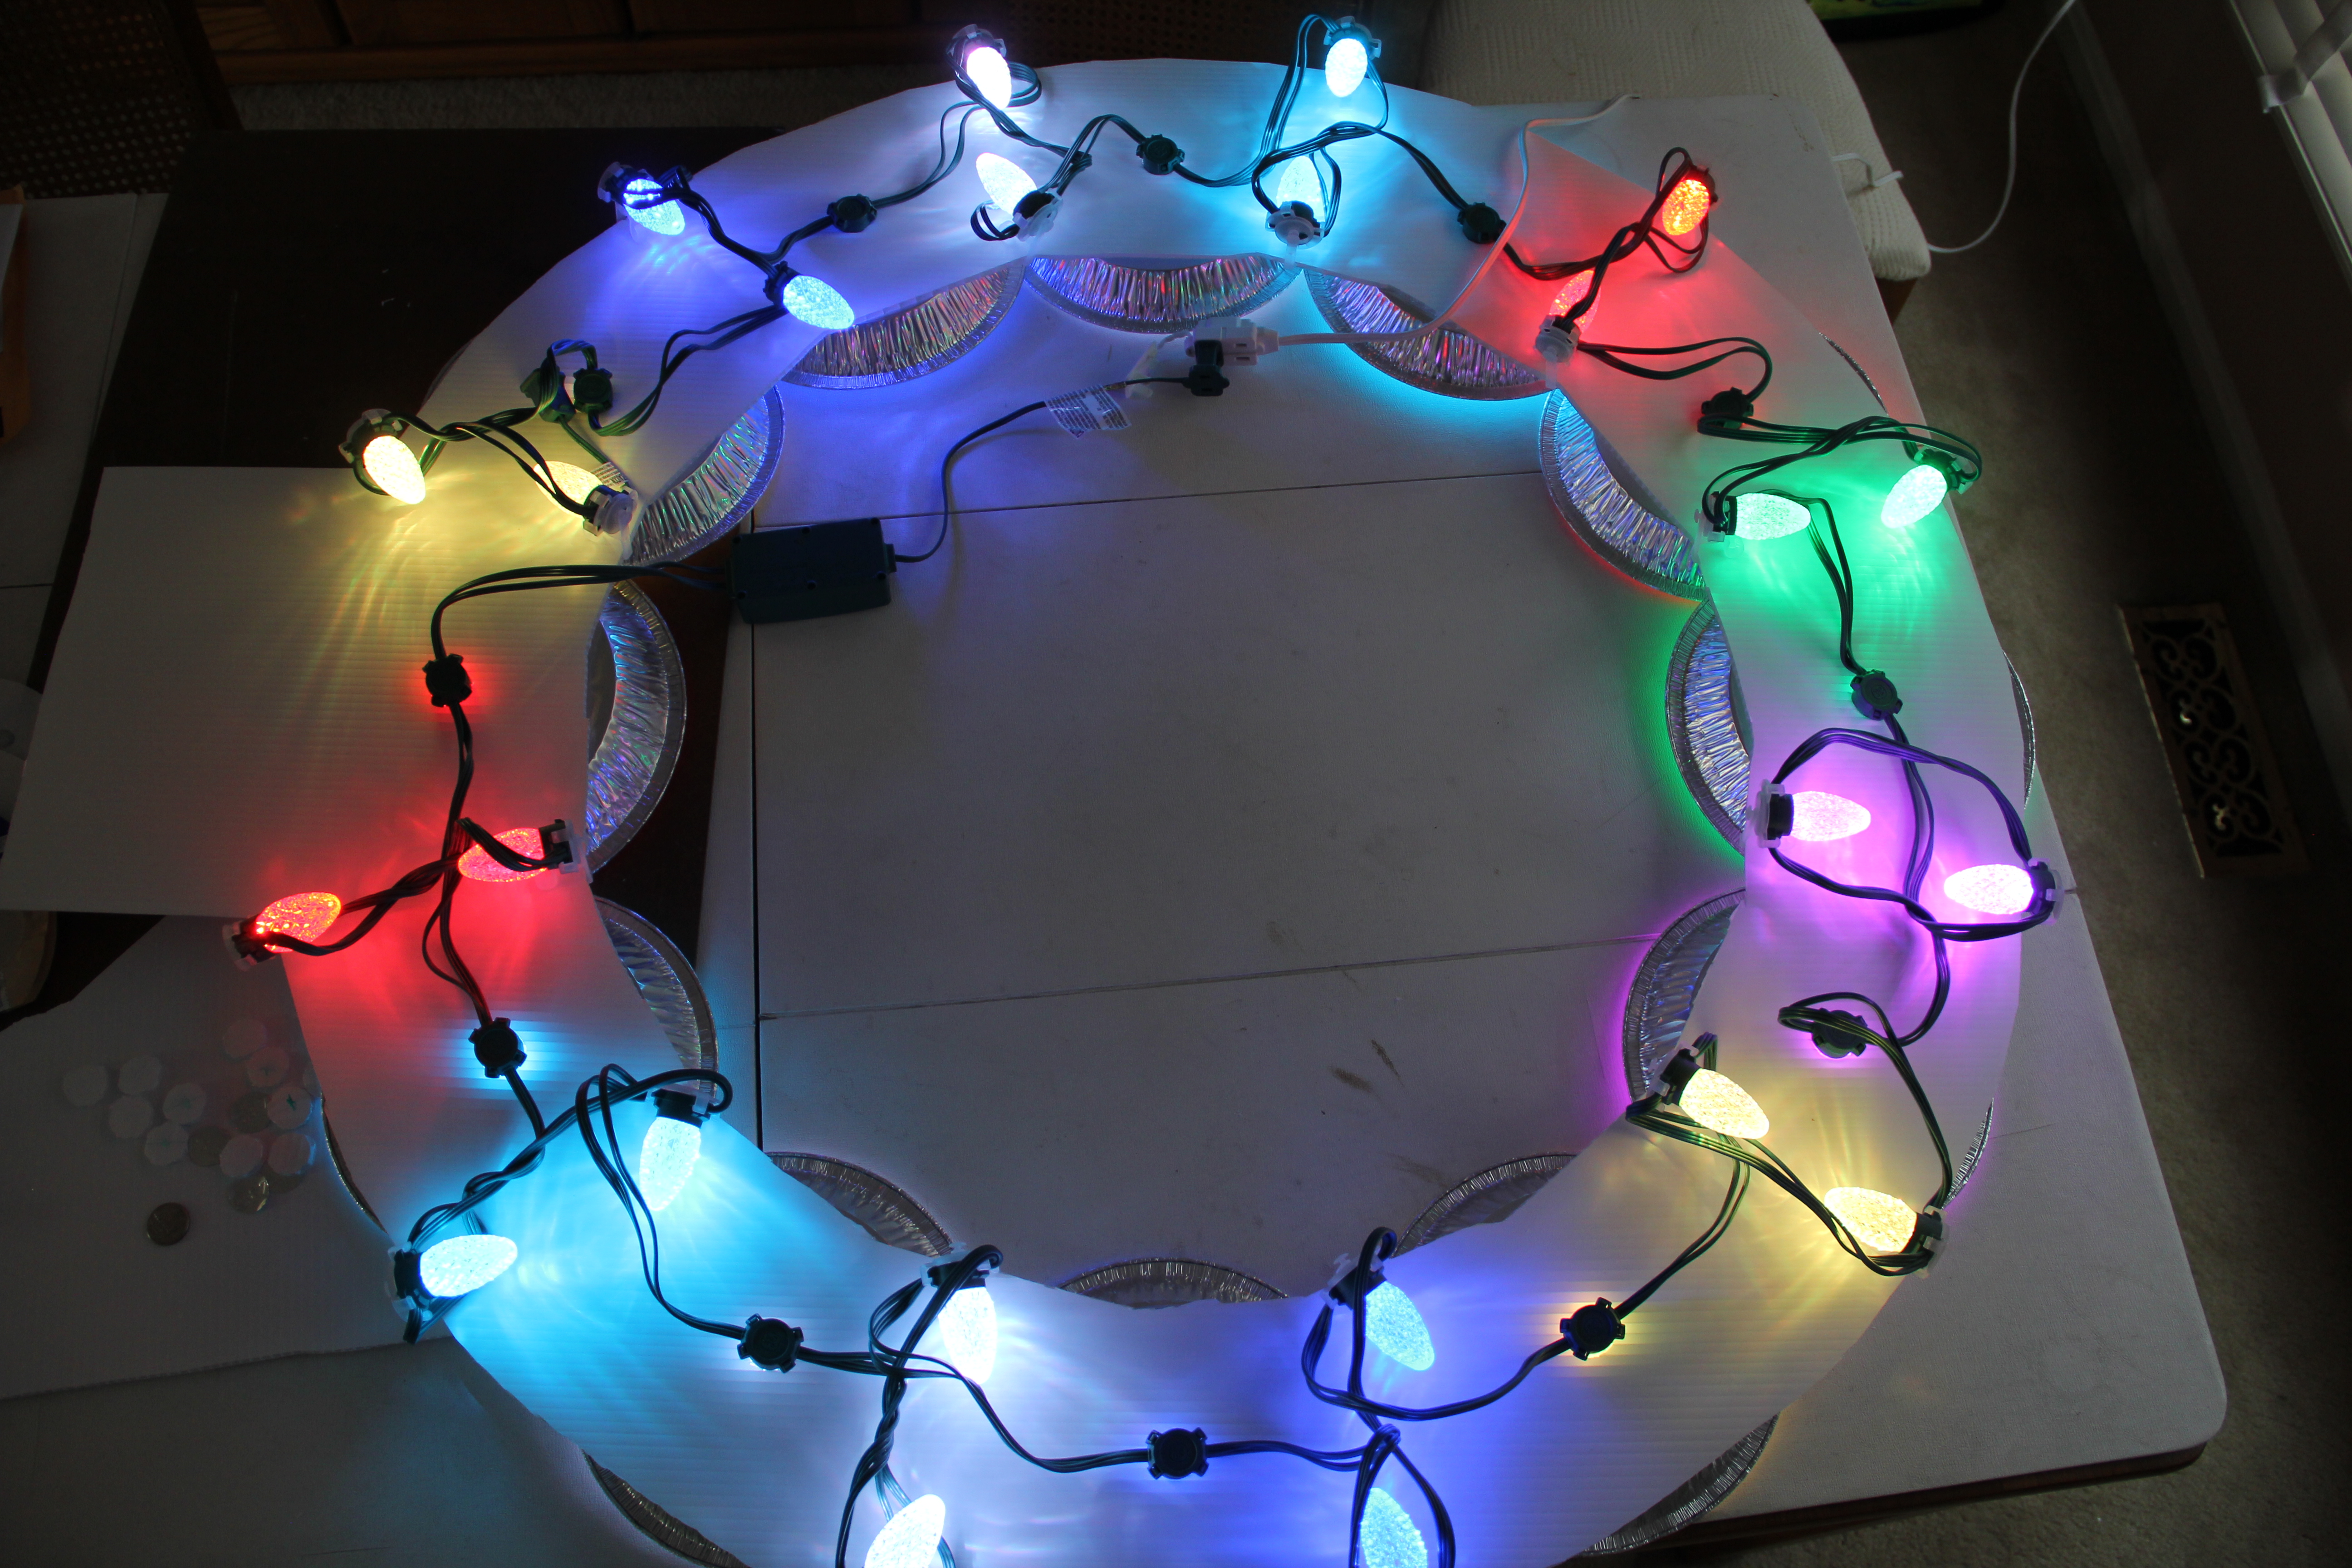 Picture of Assemble the GE Lights Into the Wreath